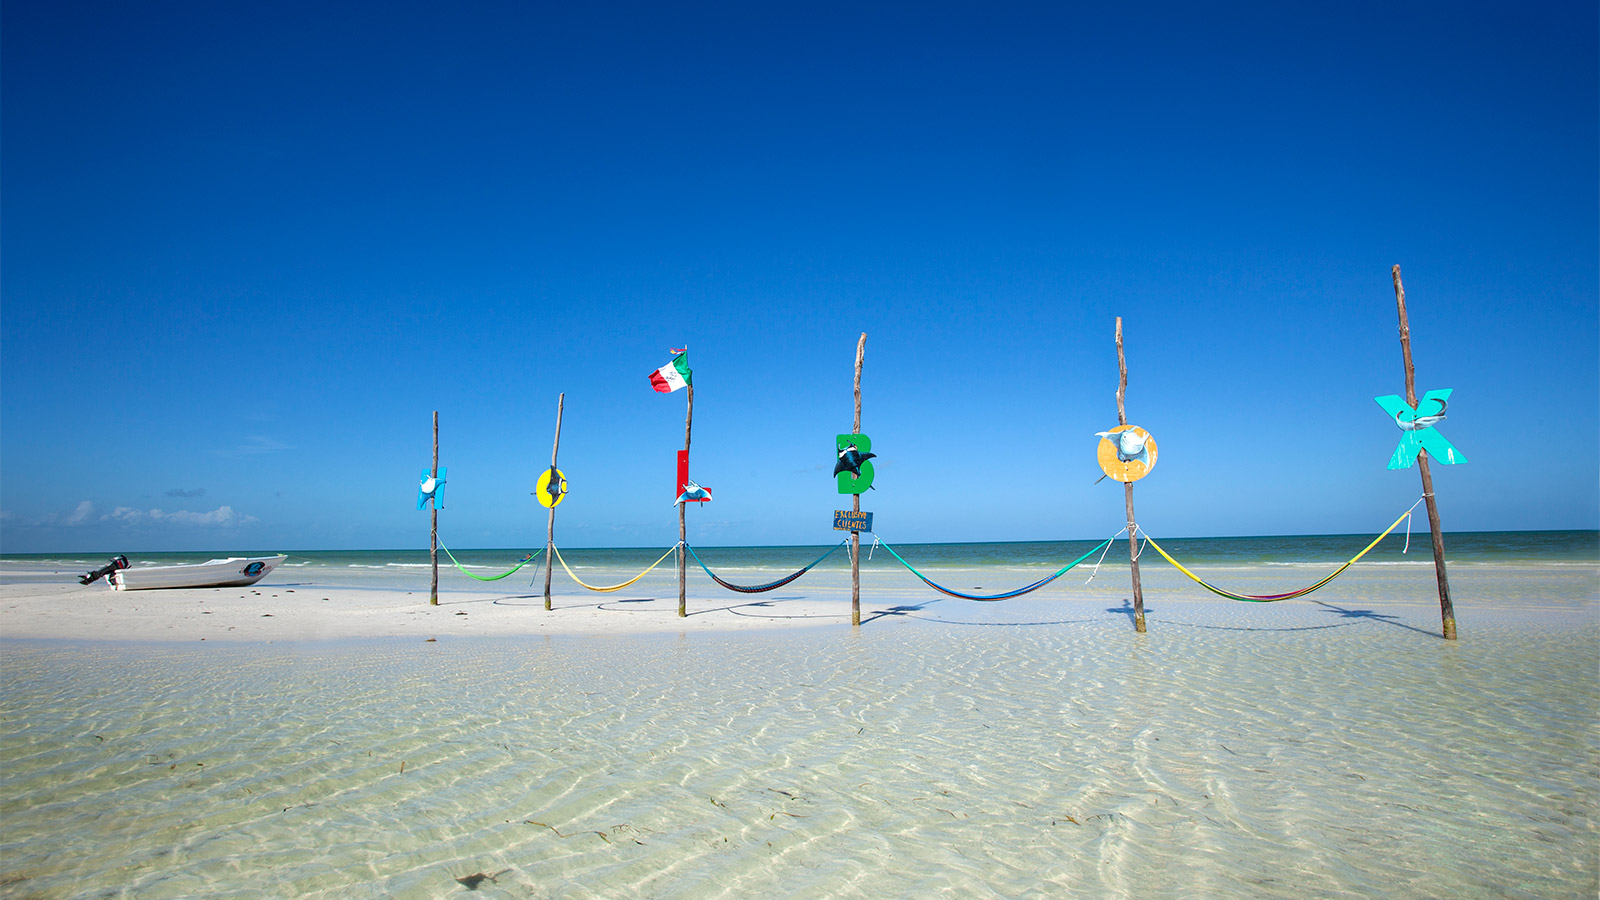 Isla Holbox: Relax at Mexico's best barefoot beach | CNN Travel